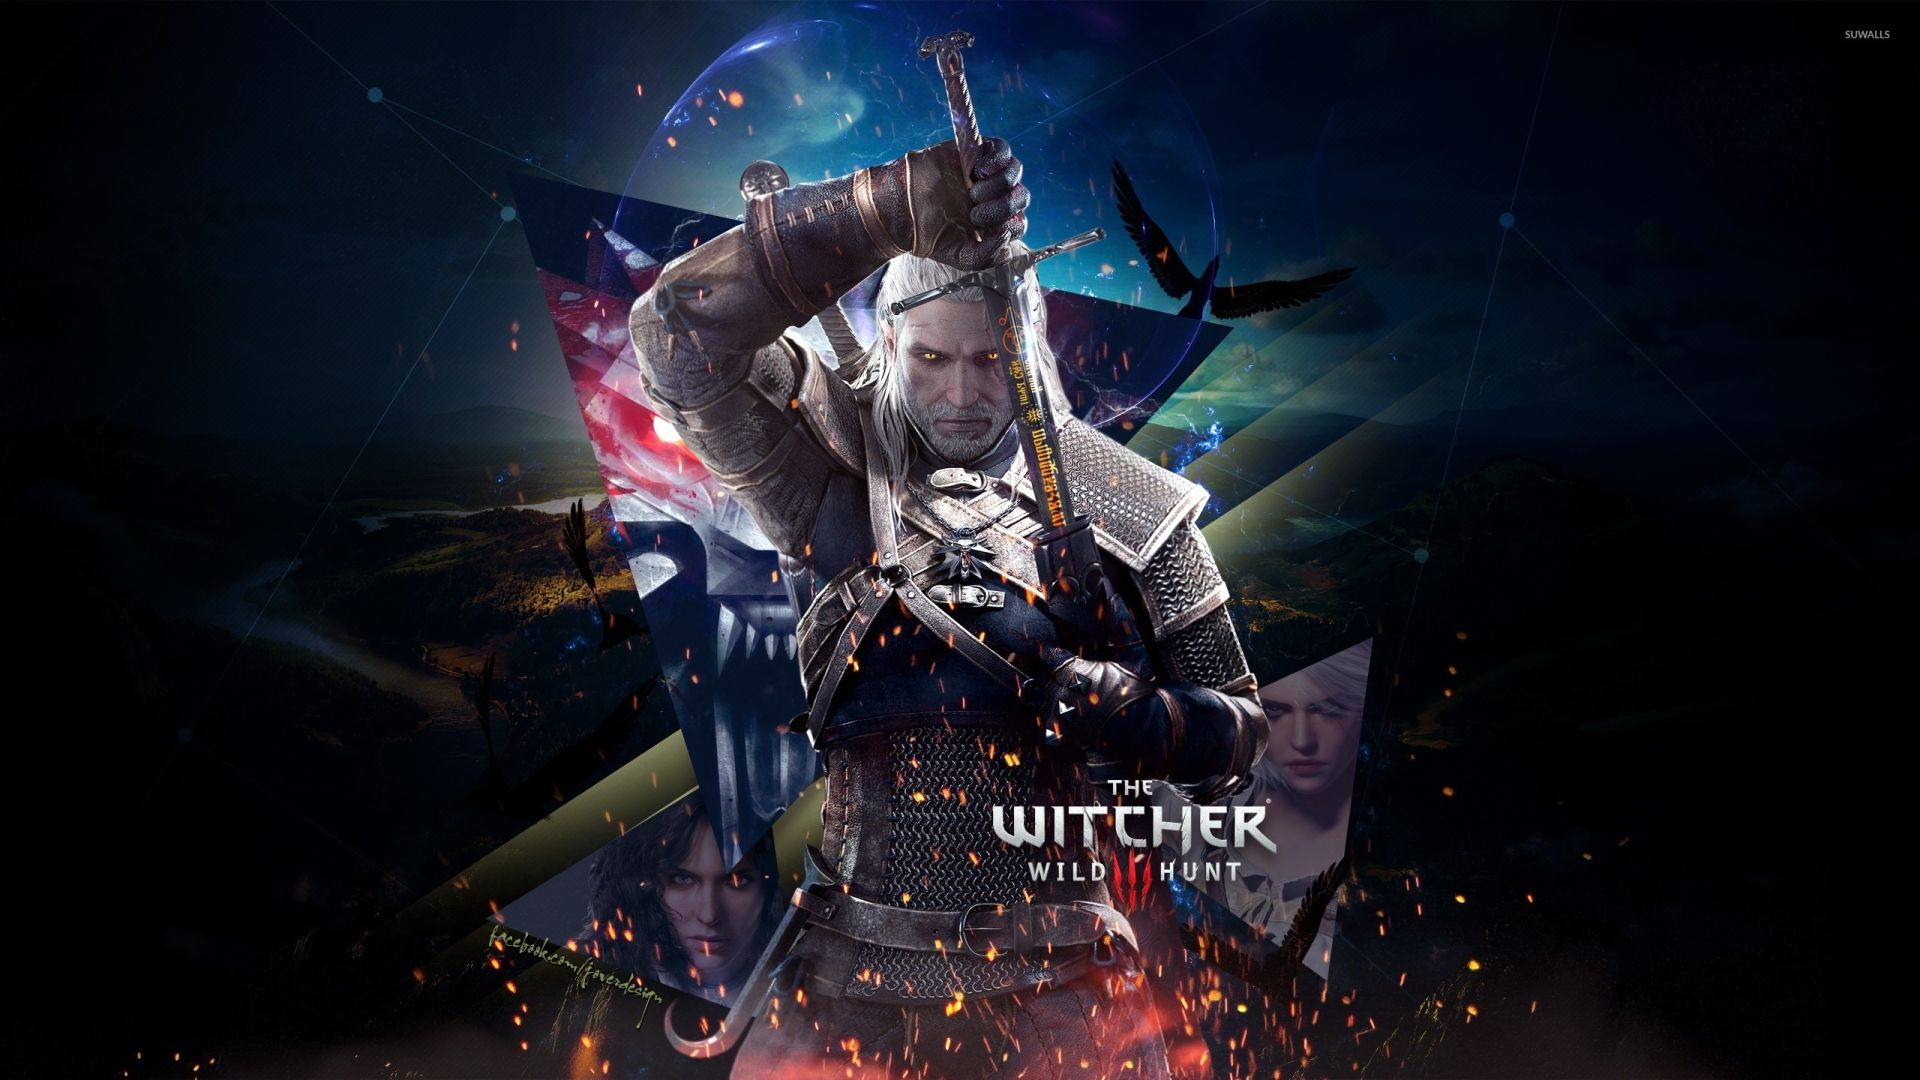 The Witcher, Free Download Wallpaper